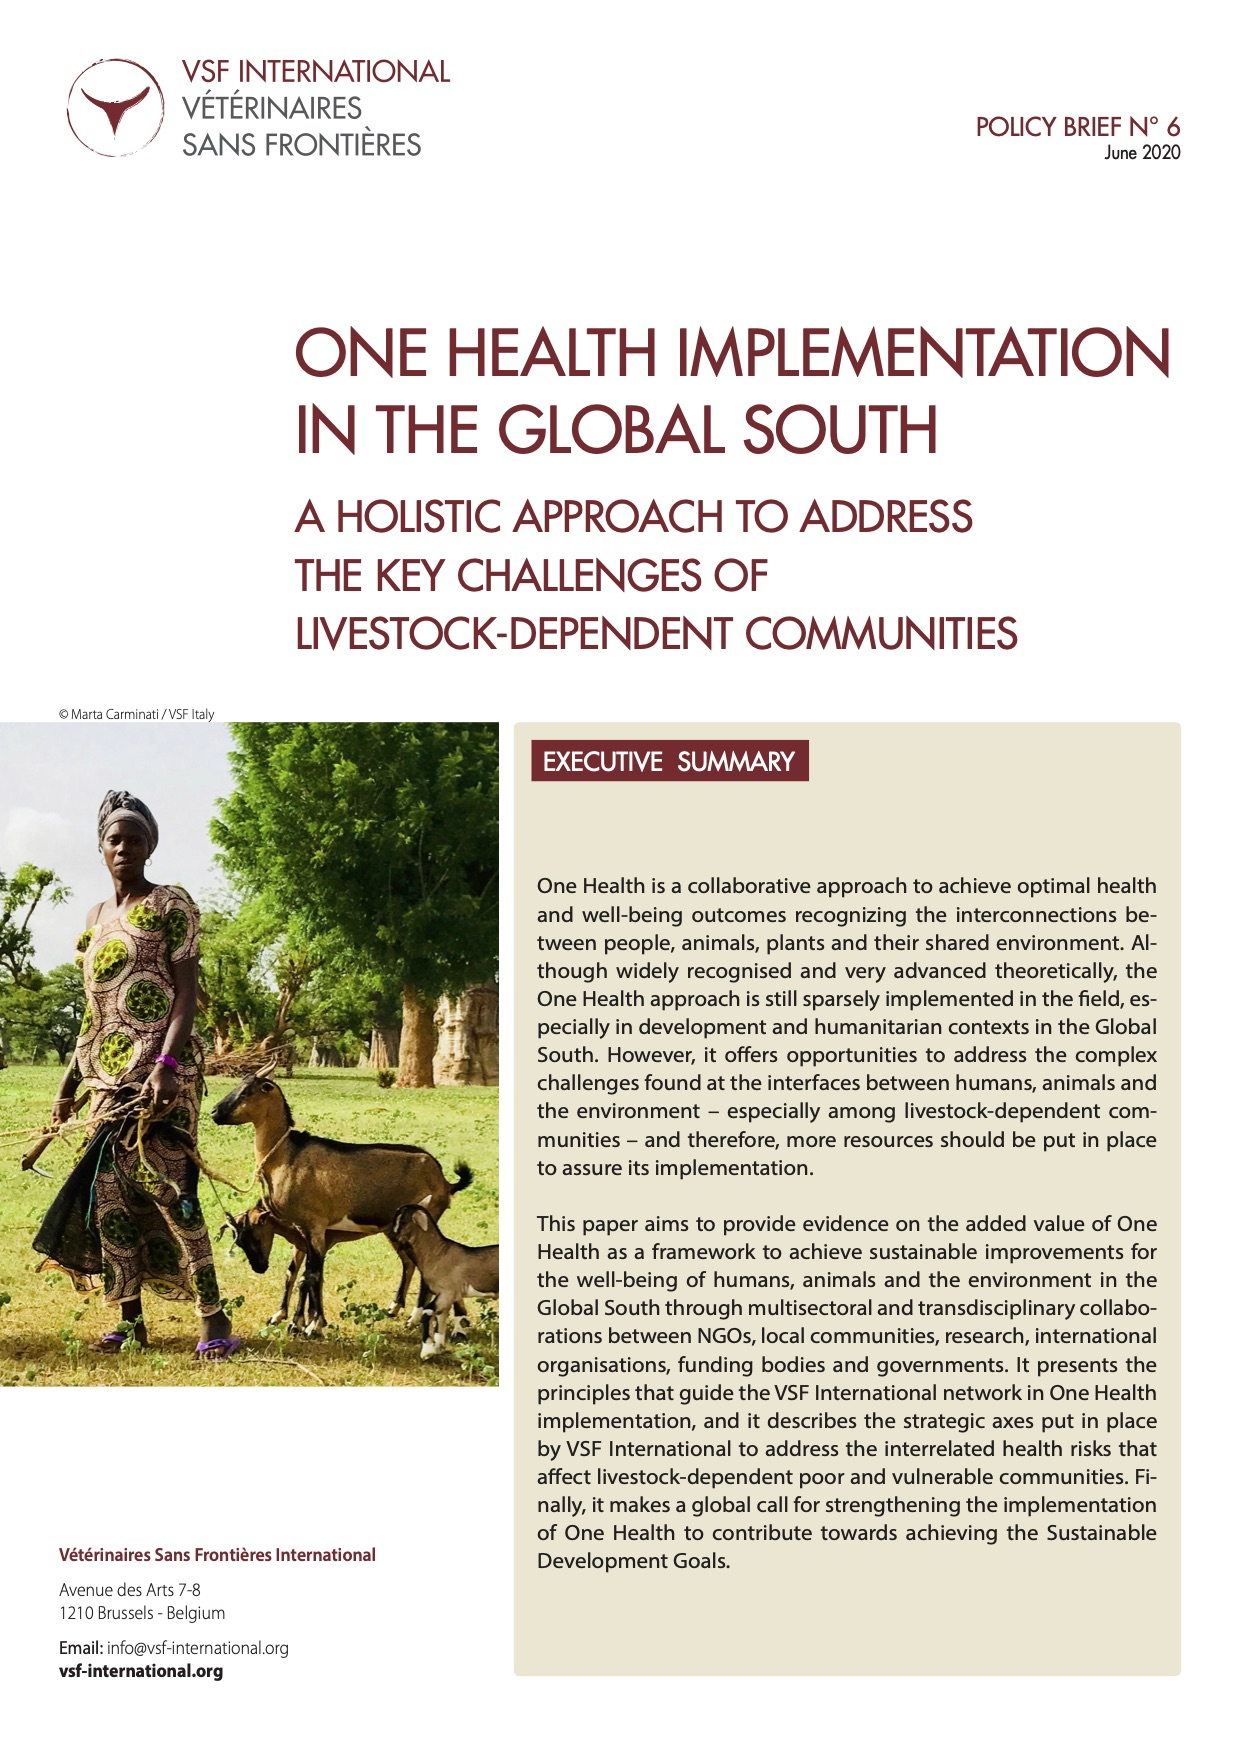 One Health implementation in the Global South: VSF International Policy Brief  Image principale